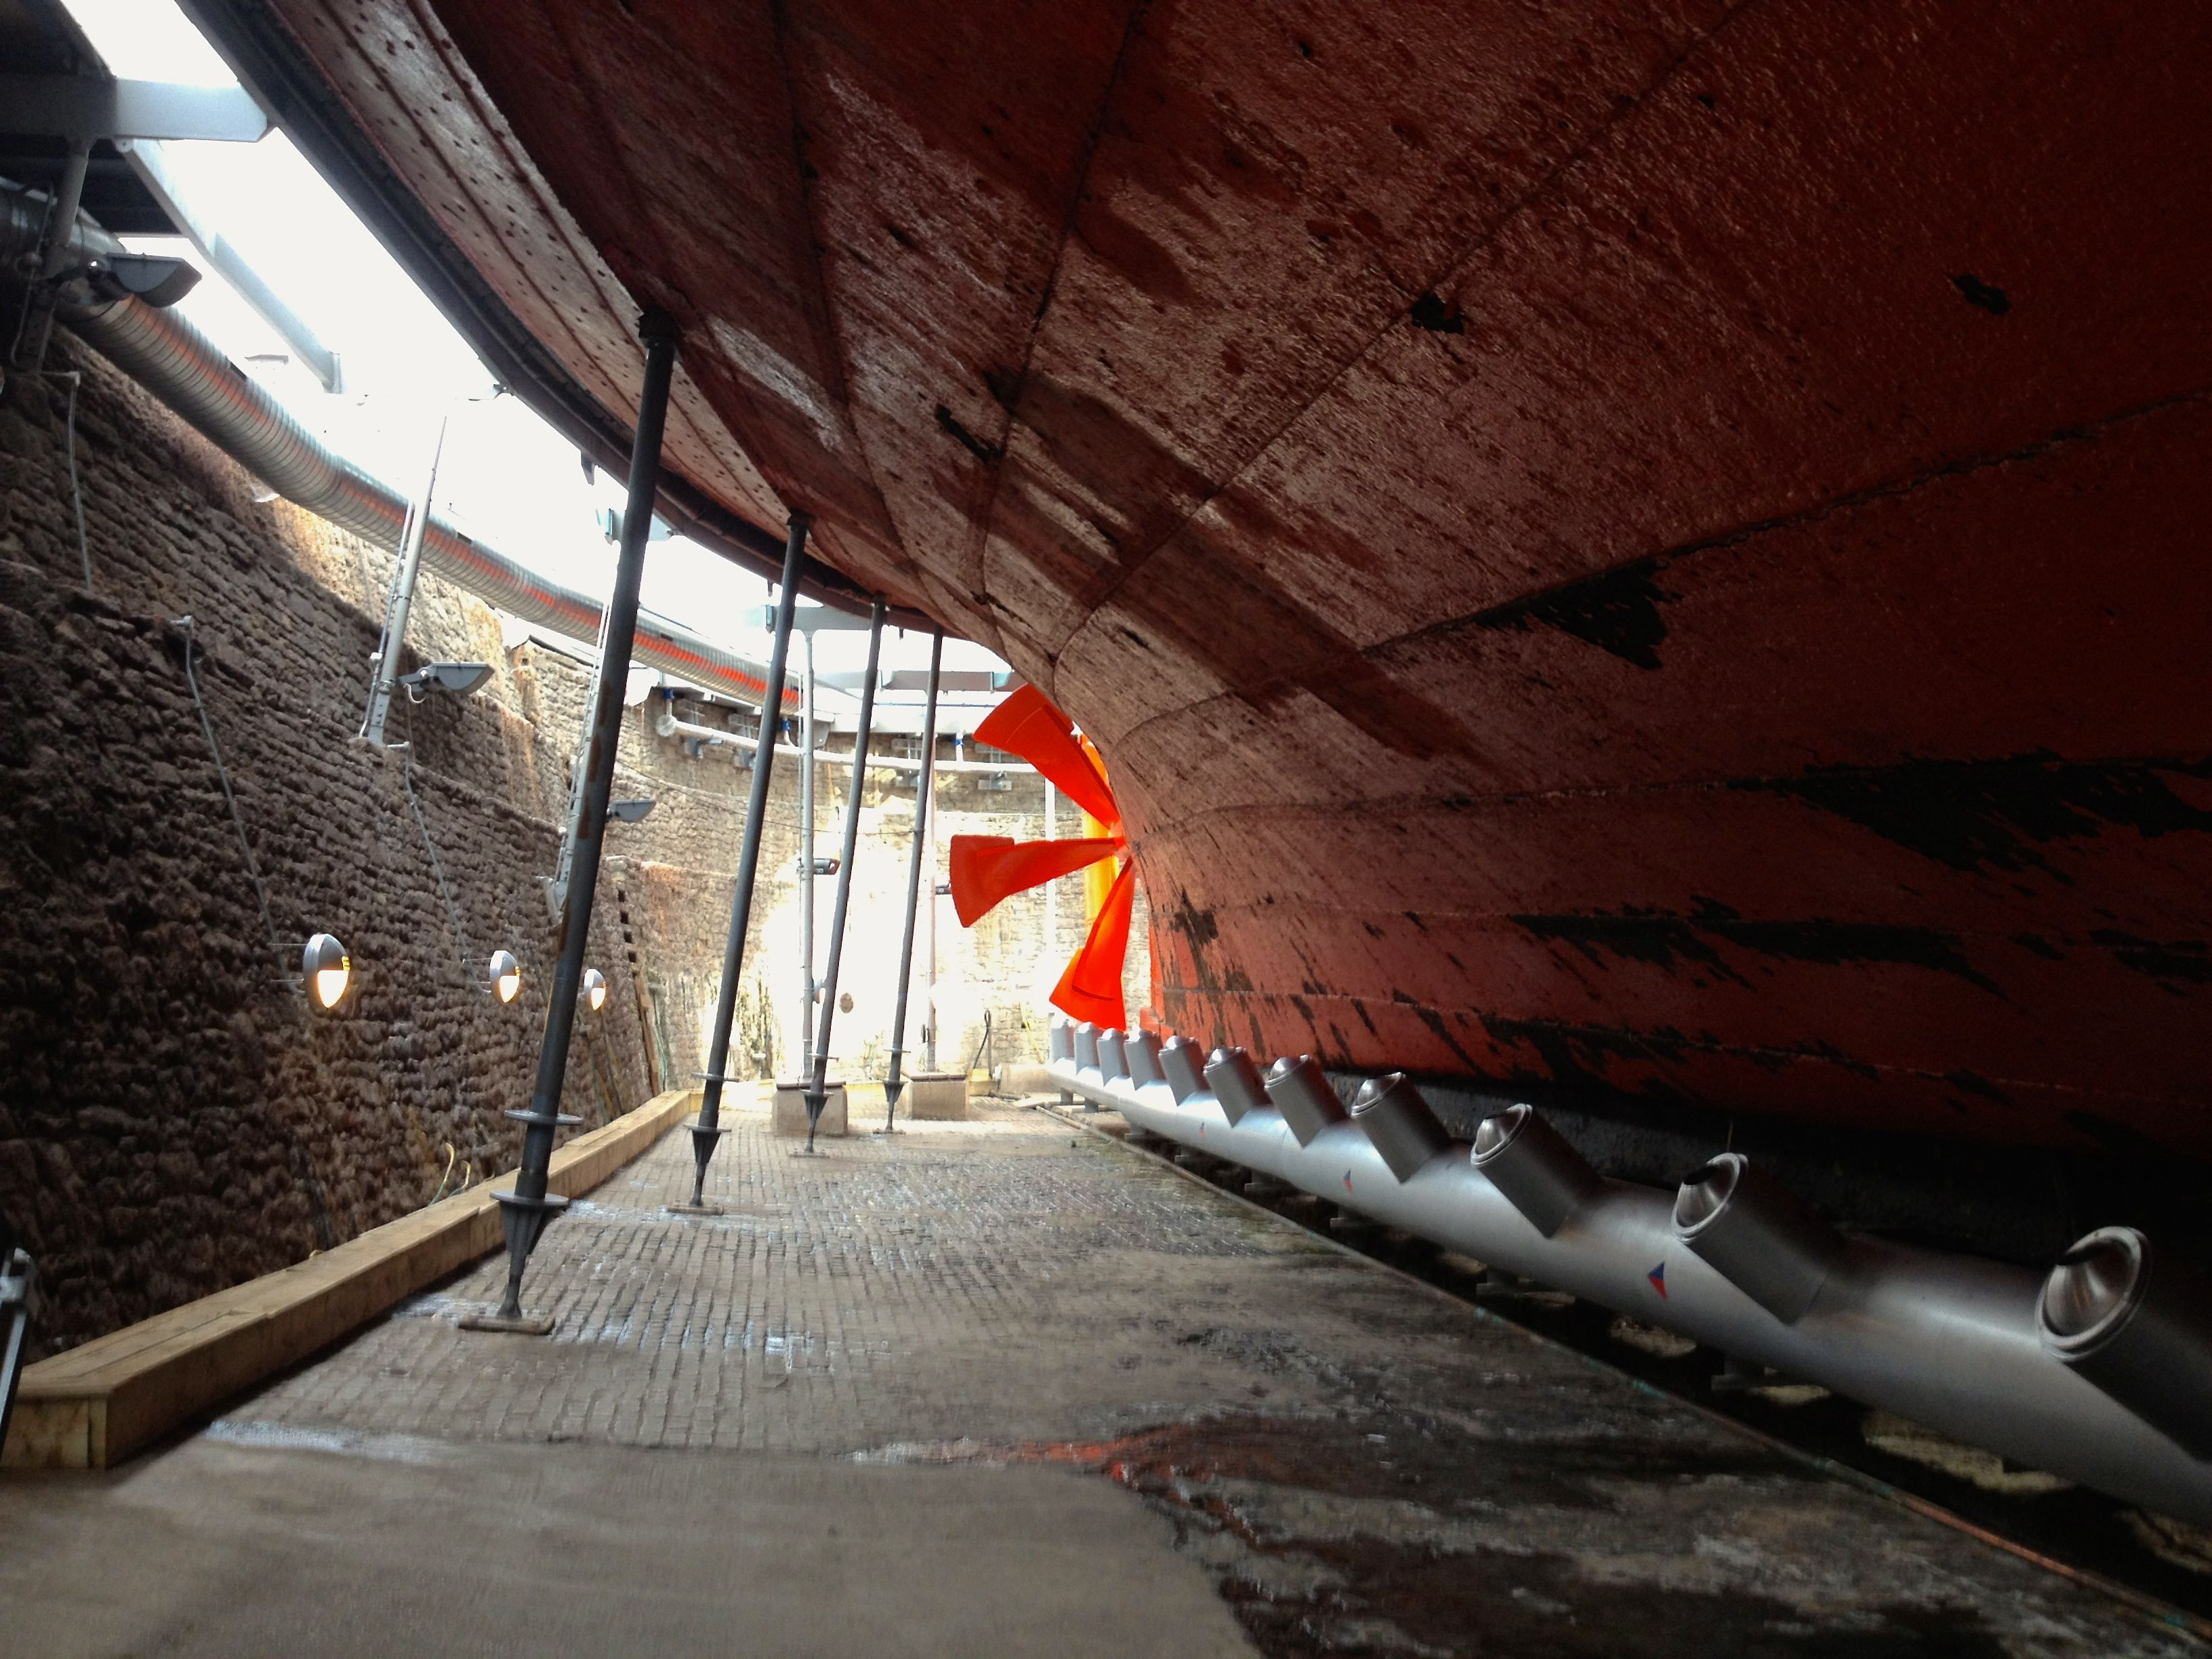 The rusting hull and bright orange propeller of an enormous ship in a dry dock